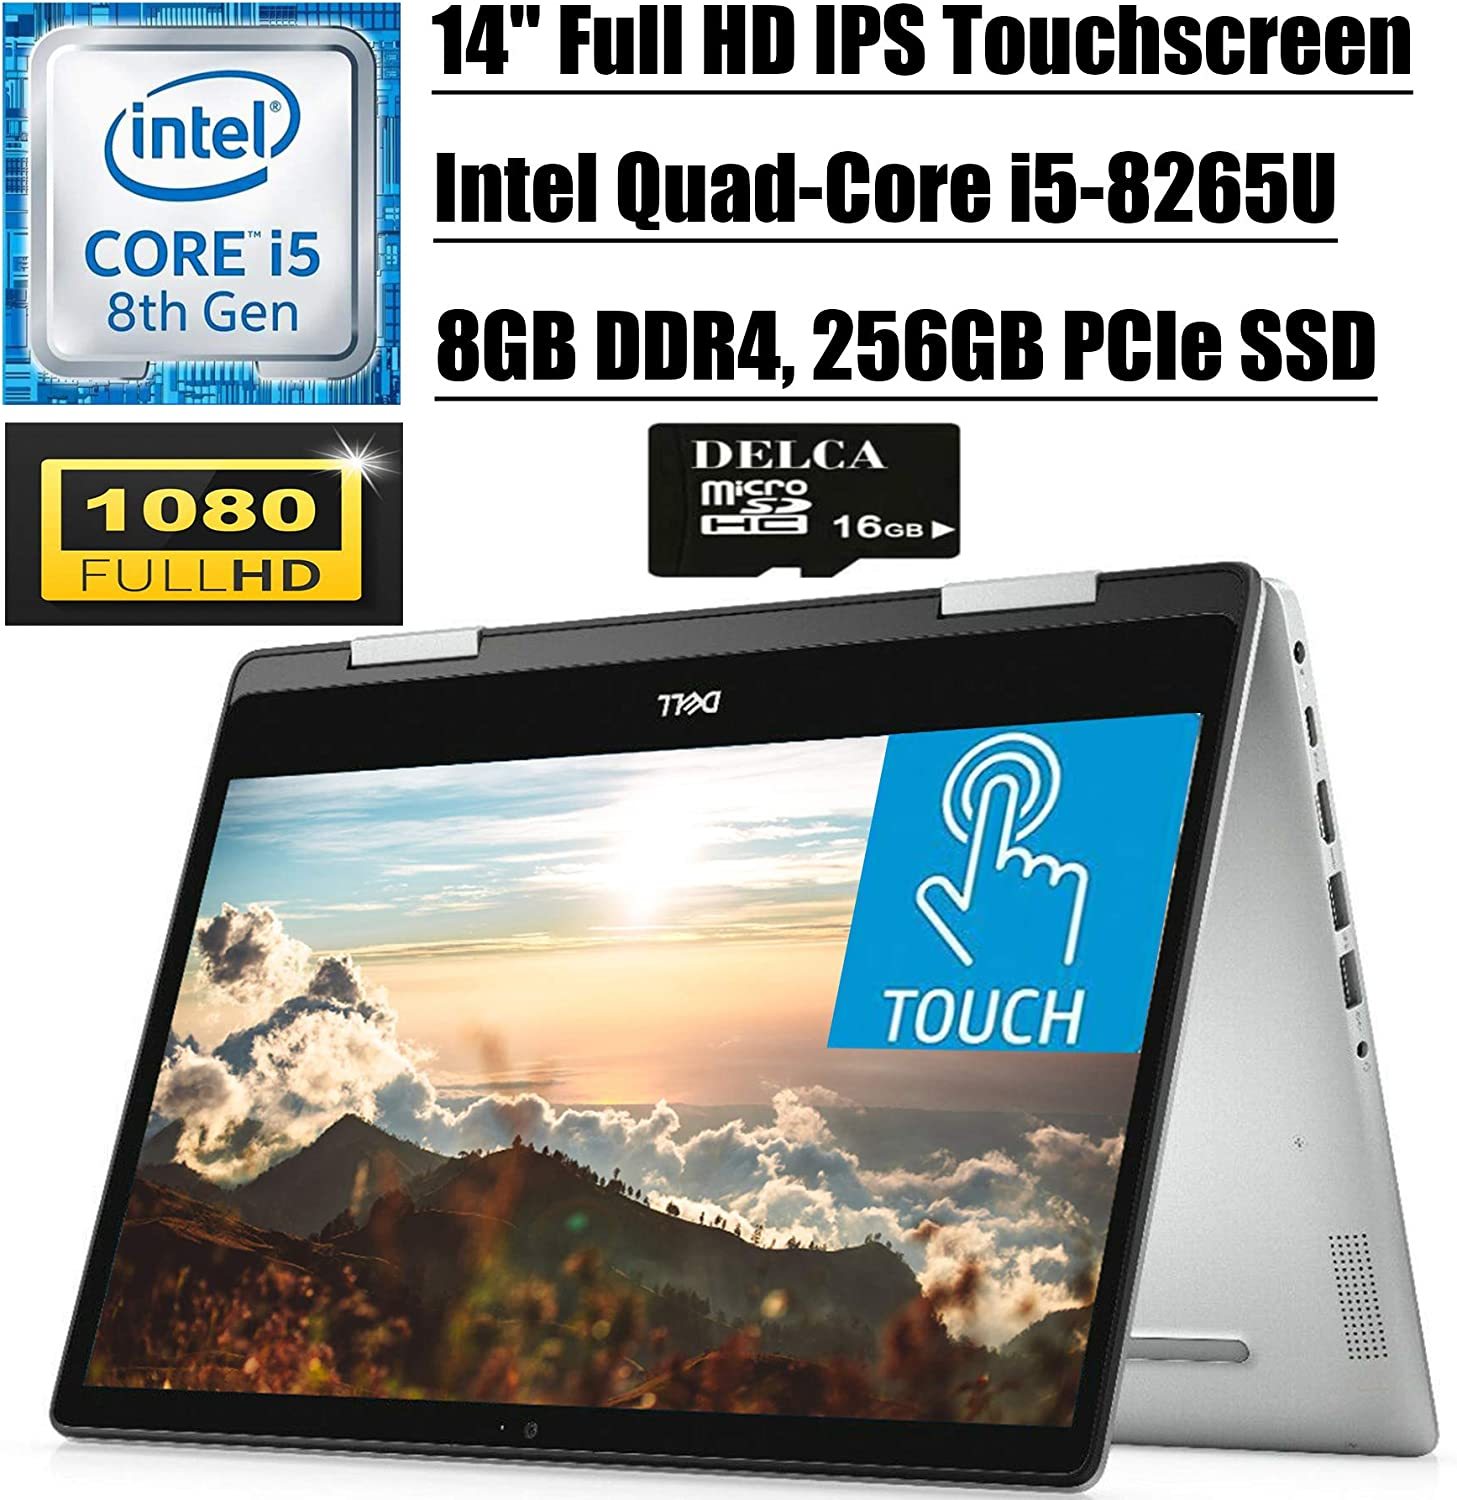 "Dell Inspiron 14 5000 5482 2020 Newest Convertible 2-in-1 Laptop I 14"" FHD Touchscreen I Intel 4-Core i5-8265U (> i7-7500U) I 8GB DDR4 256GB PCIE SSD I Backlit KB Win 10 + Delca 16GB Micro SD Card"